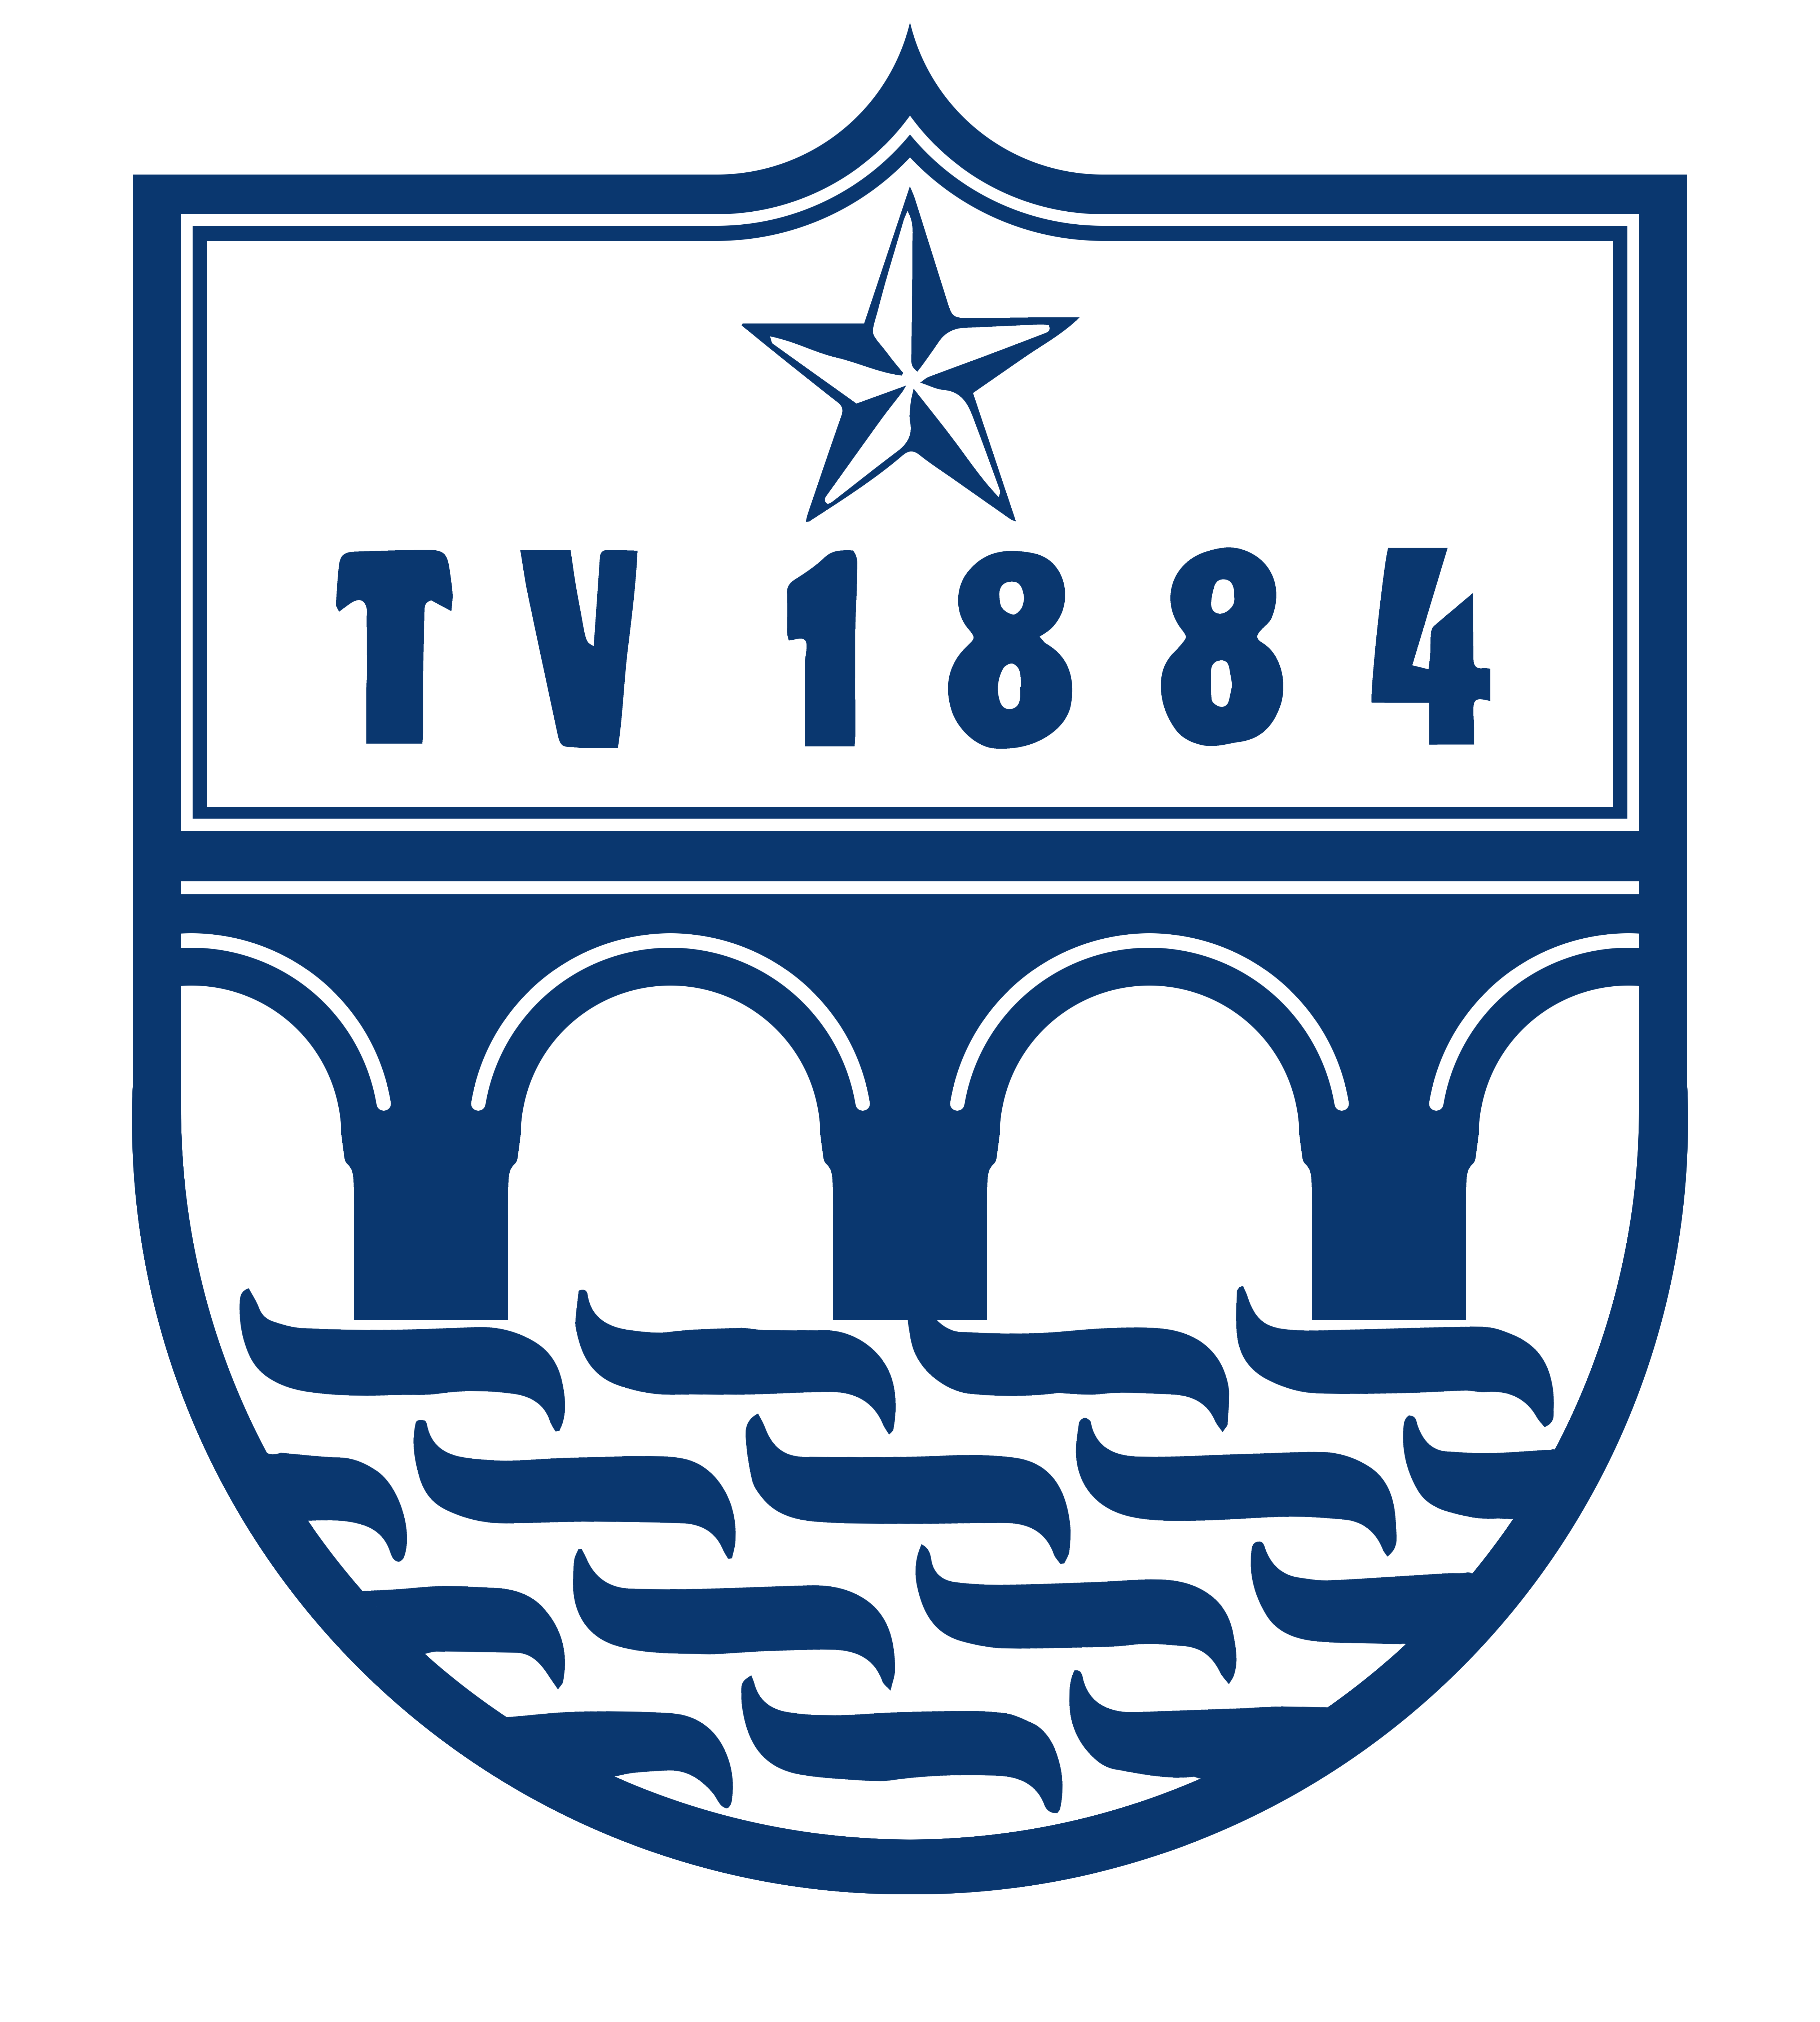 TV 1884 Marktheidenfeld